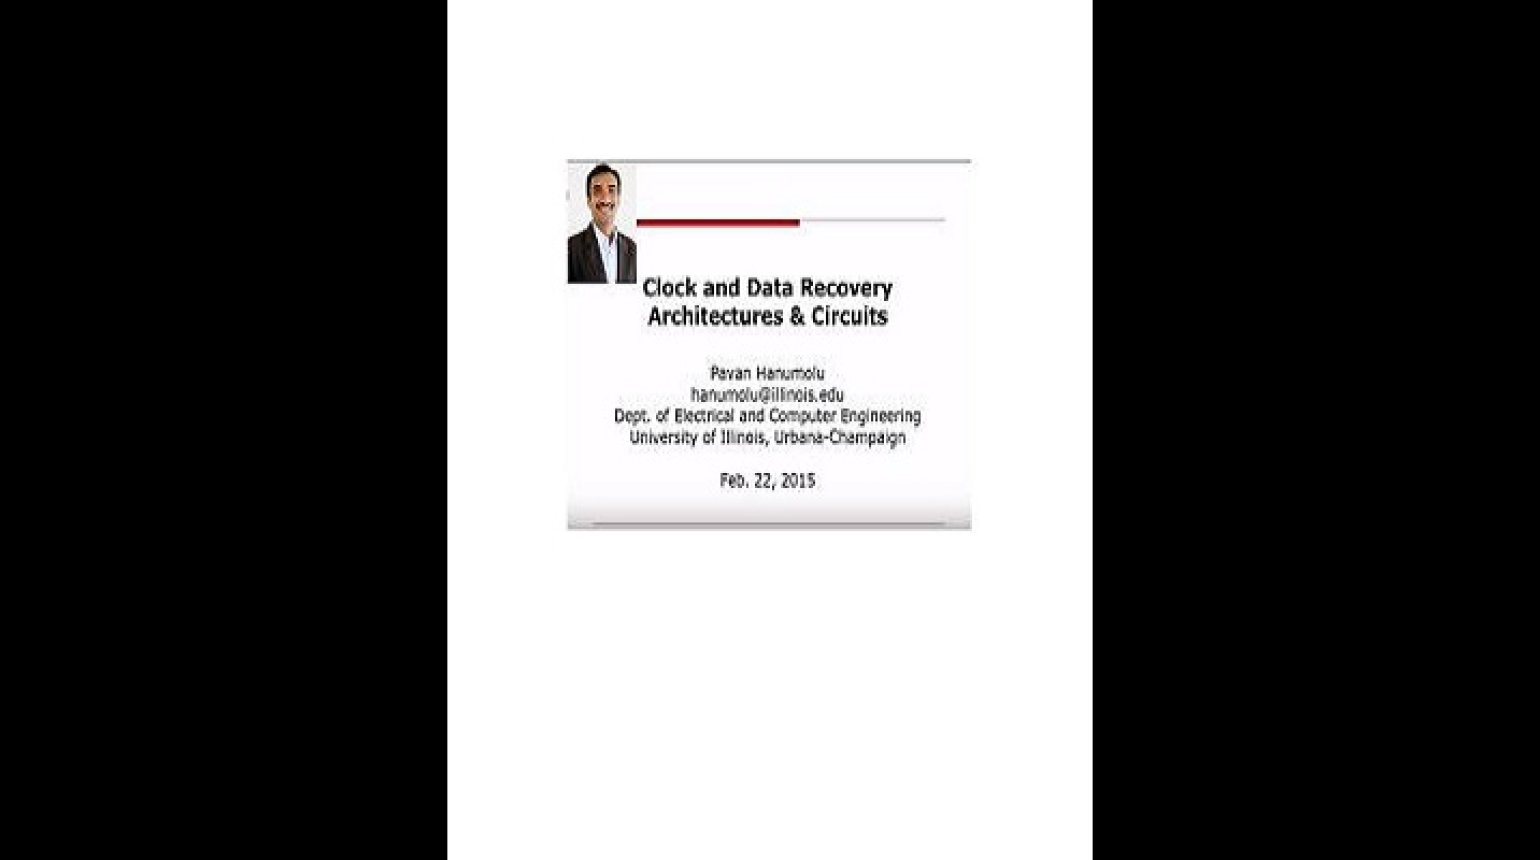 Clock and Data Recovery Architectures and Circuits Video